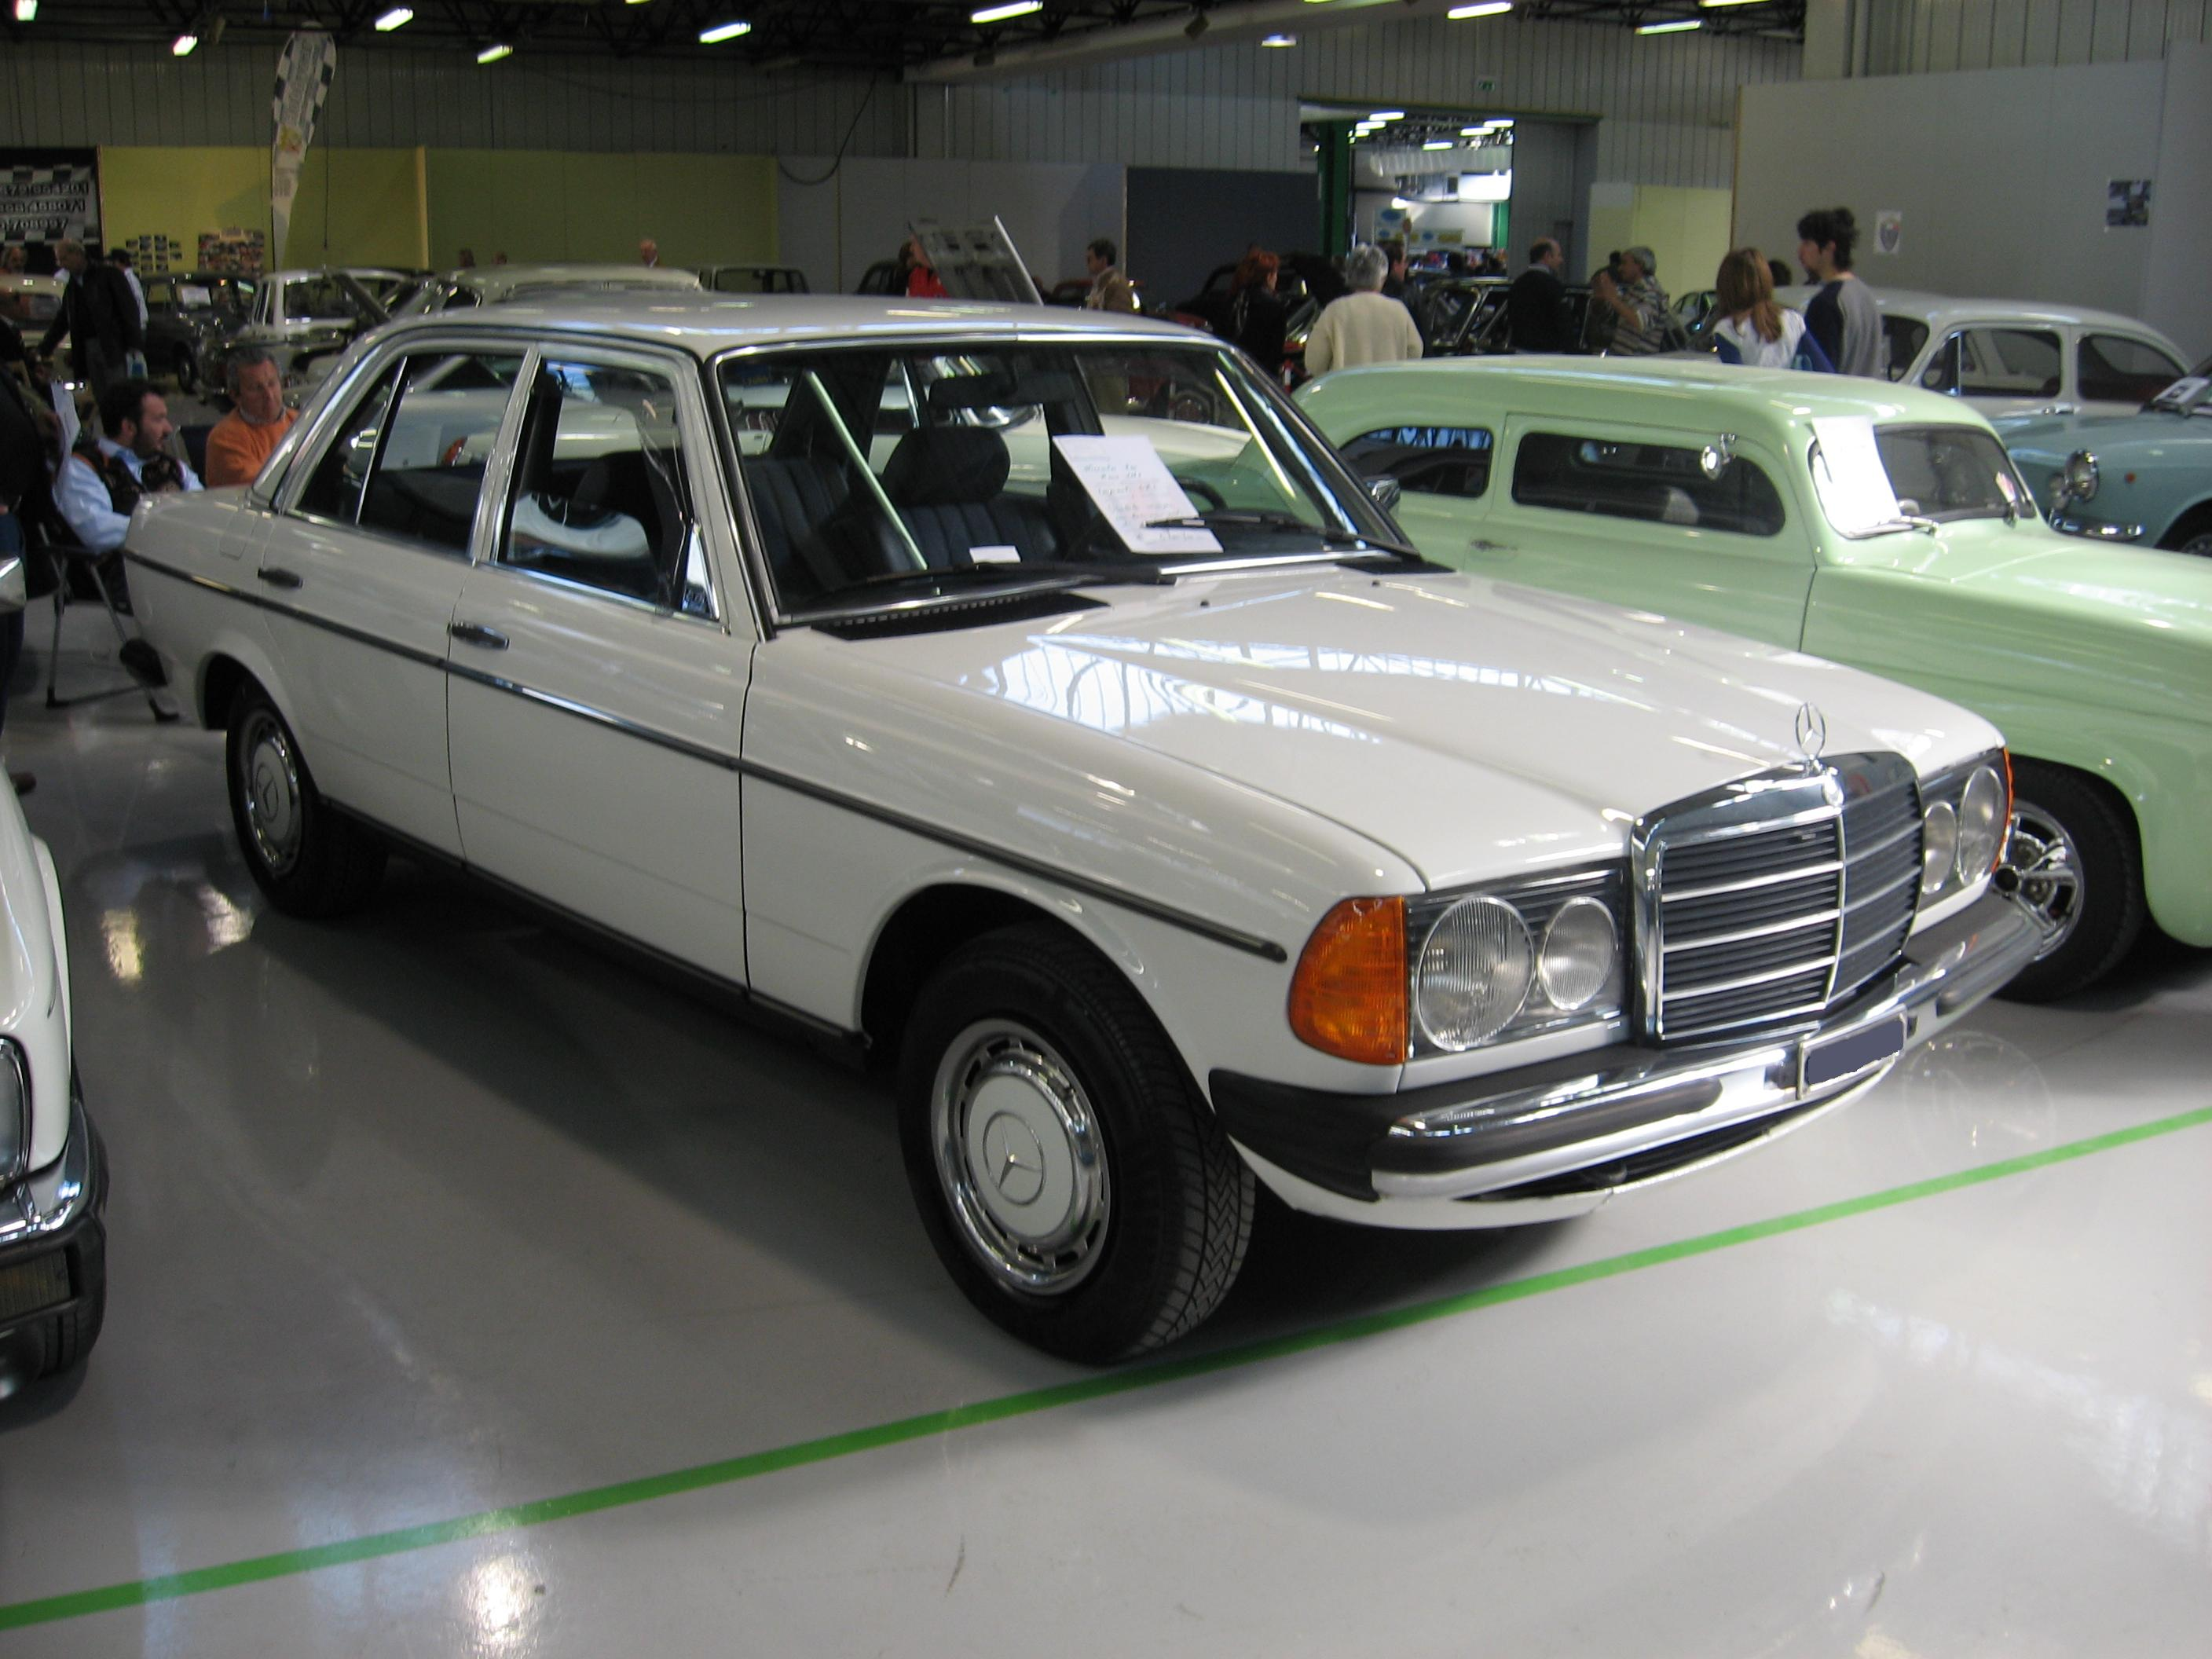 File:Mercedes-Benz 230 E (W123) at Old Timer Show in Forlì